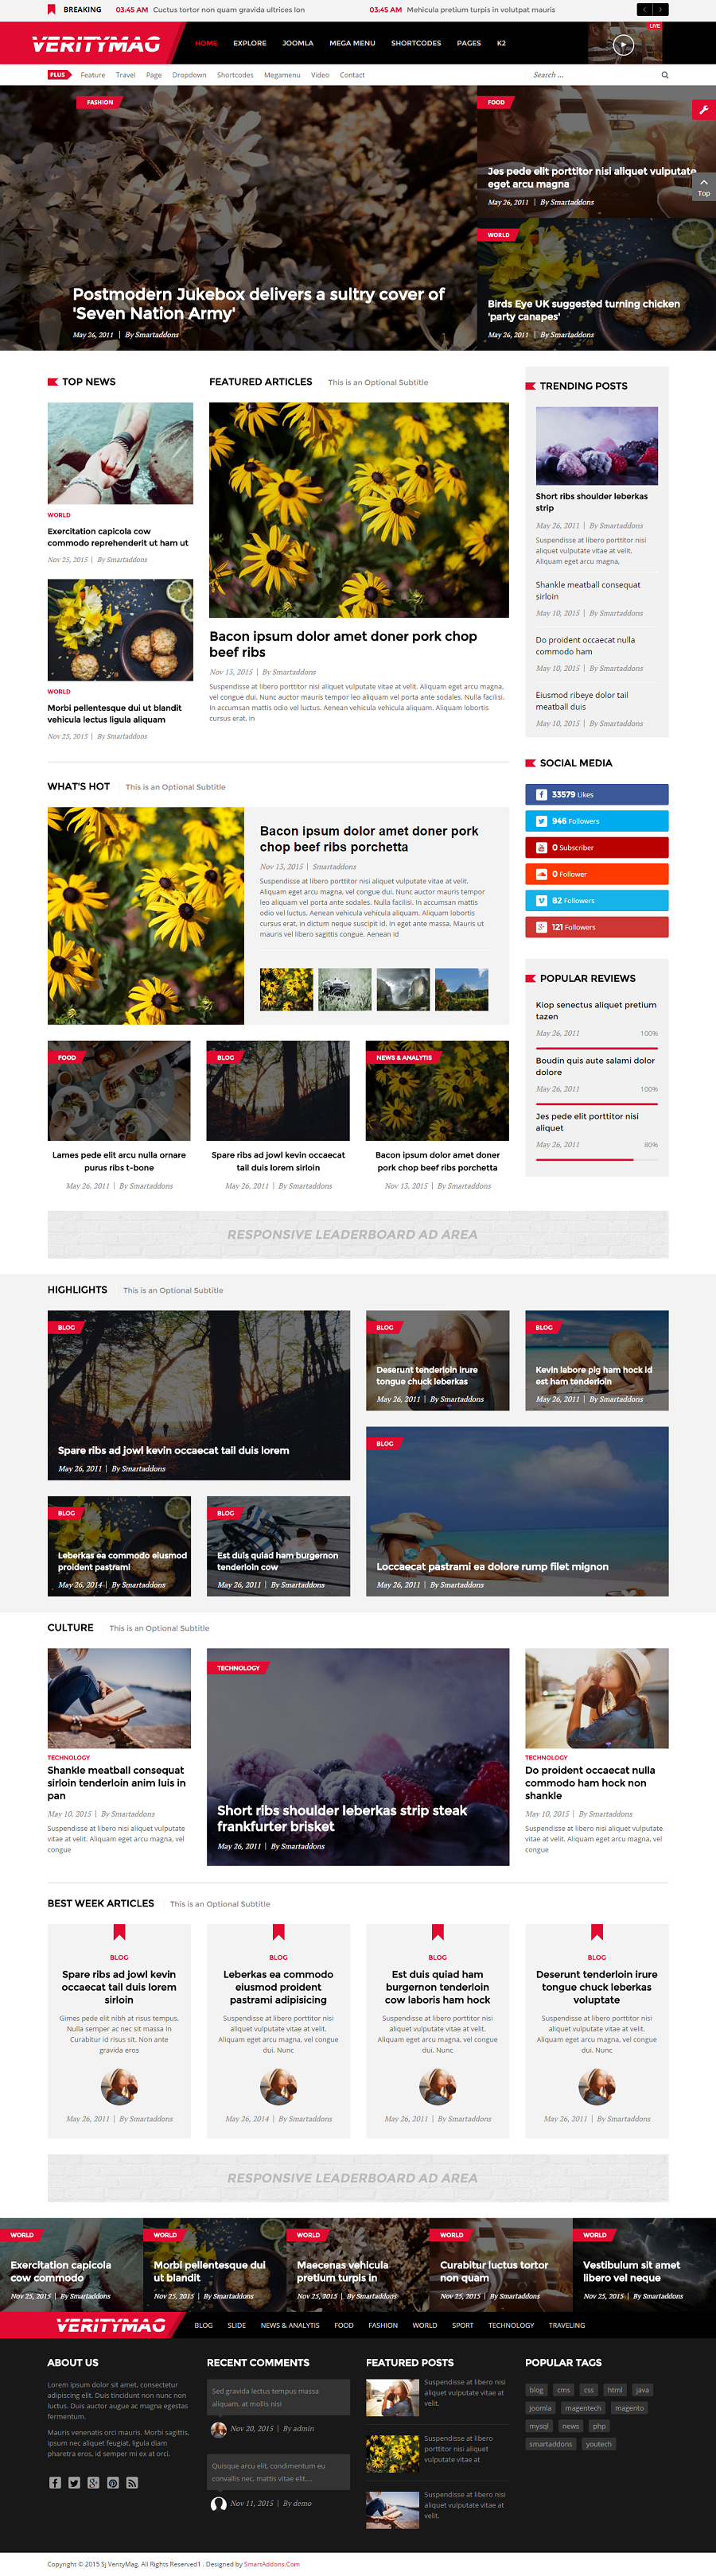 SJ VerityMag - Free Responsive Joomla news magazine Template - 05_home4.png